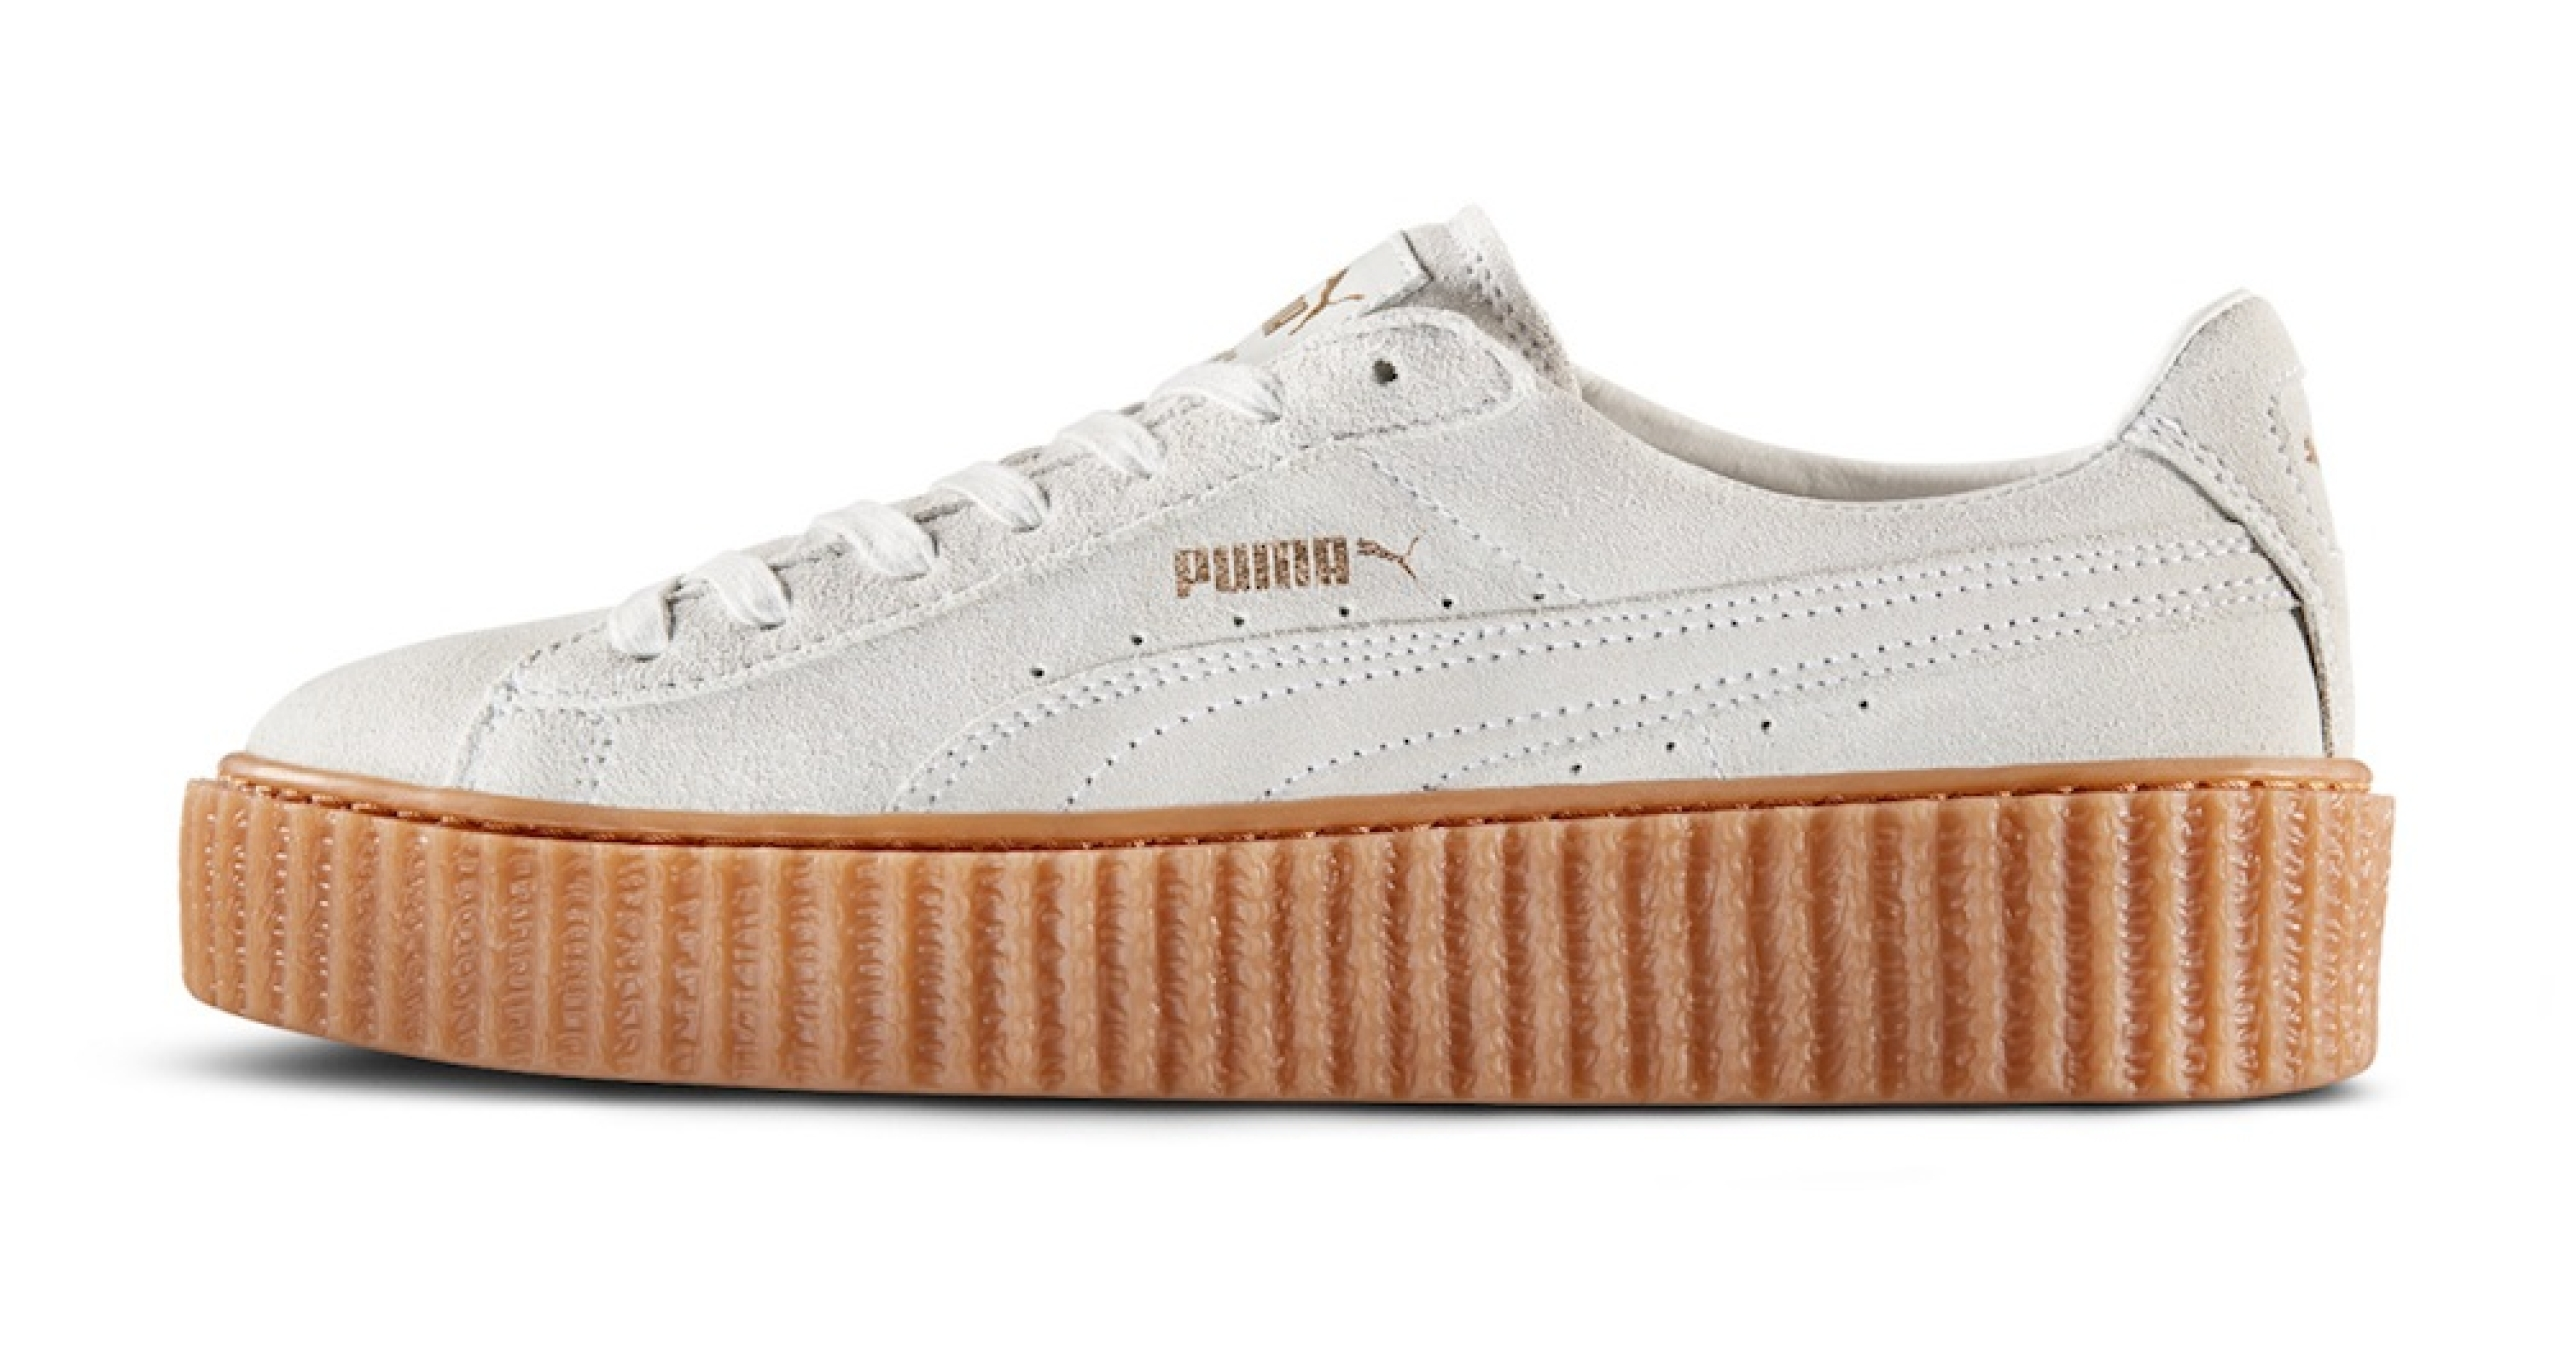 Puma_Creeper_by_Rihanna_White_1.jpg